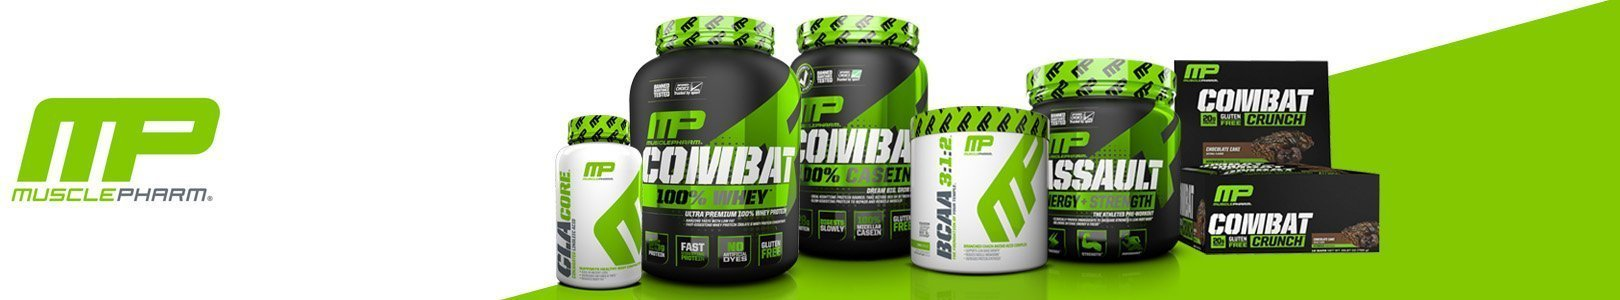 Musclepharm_Global Impex